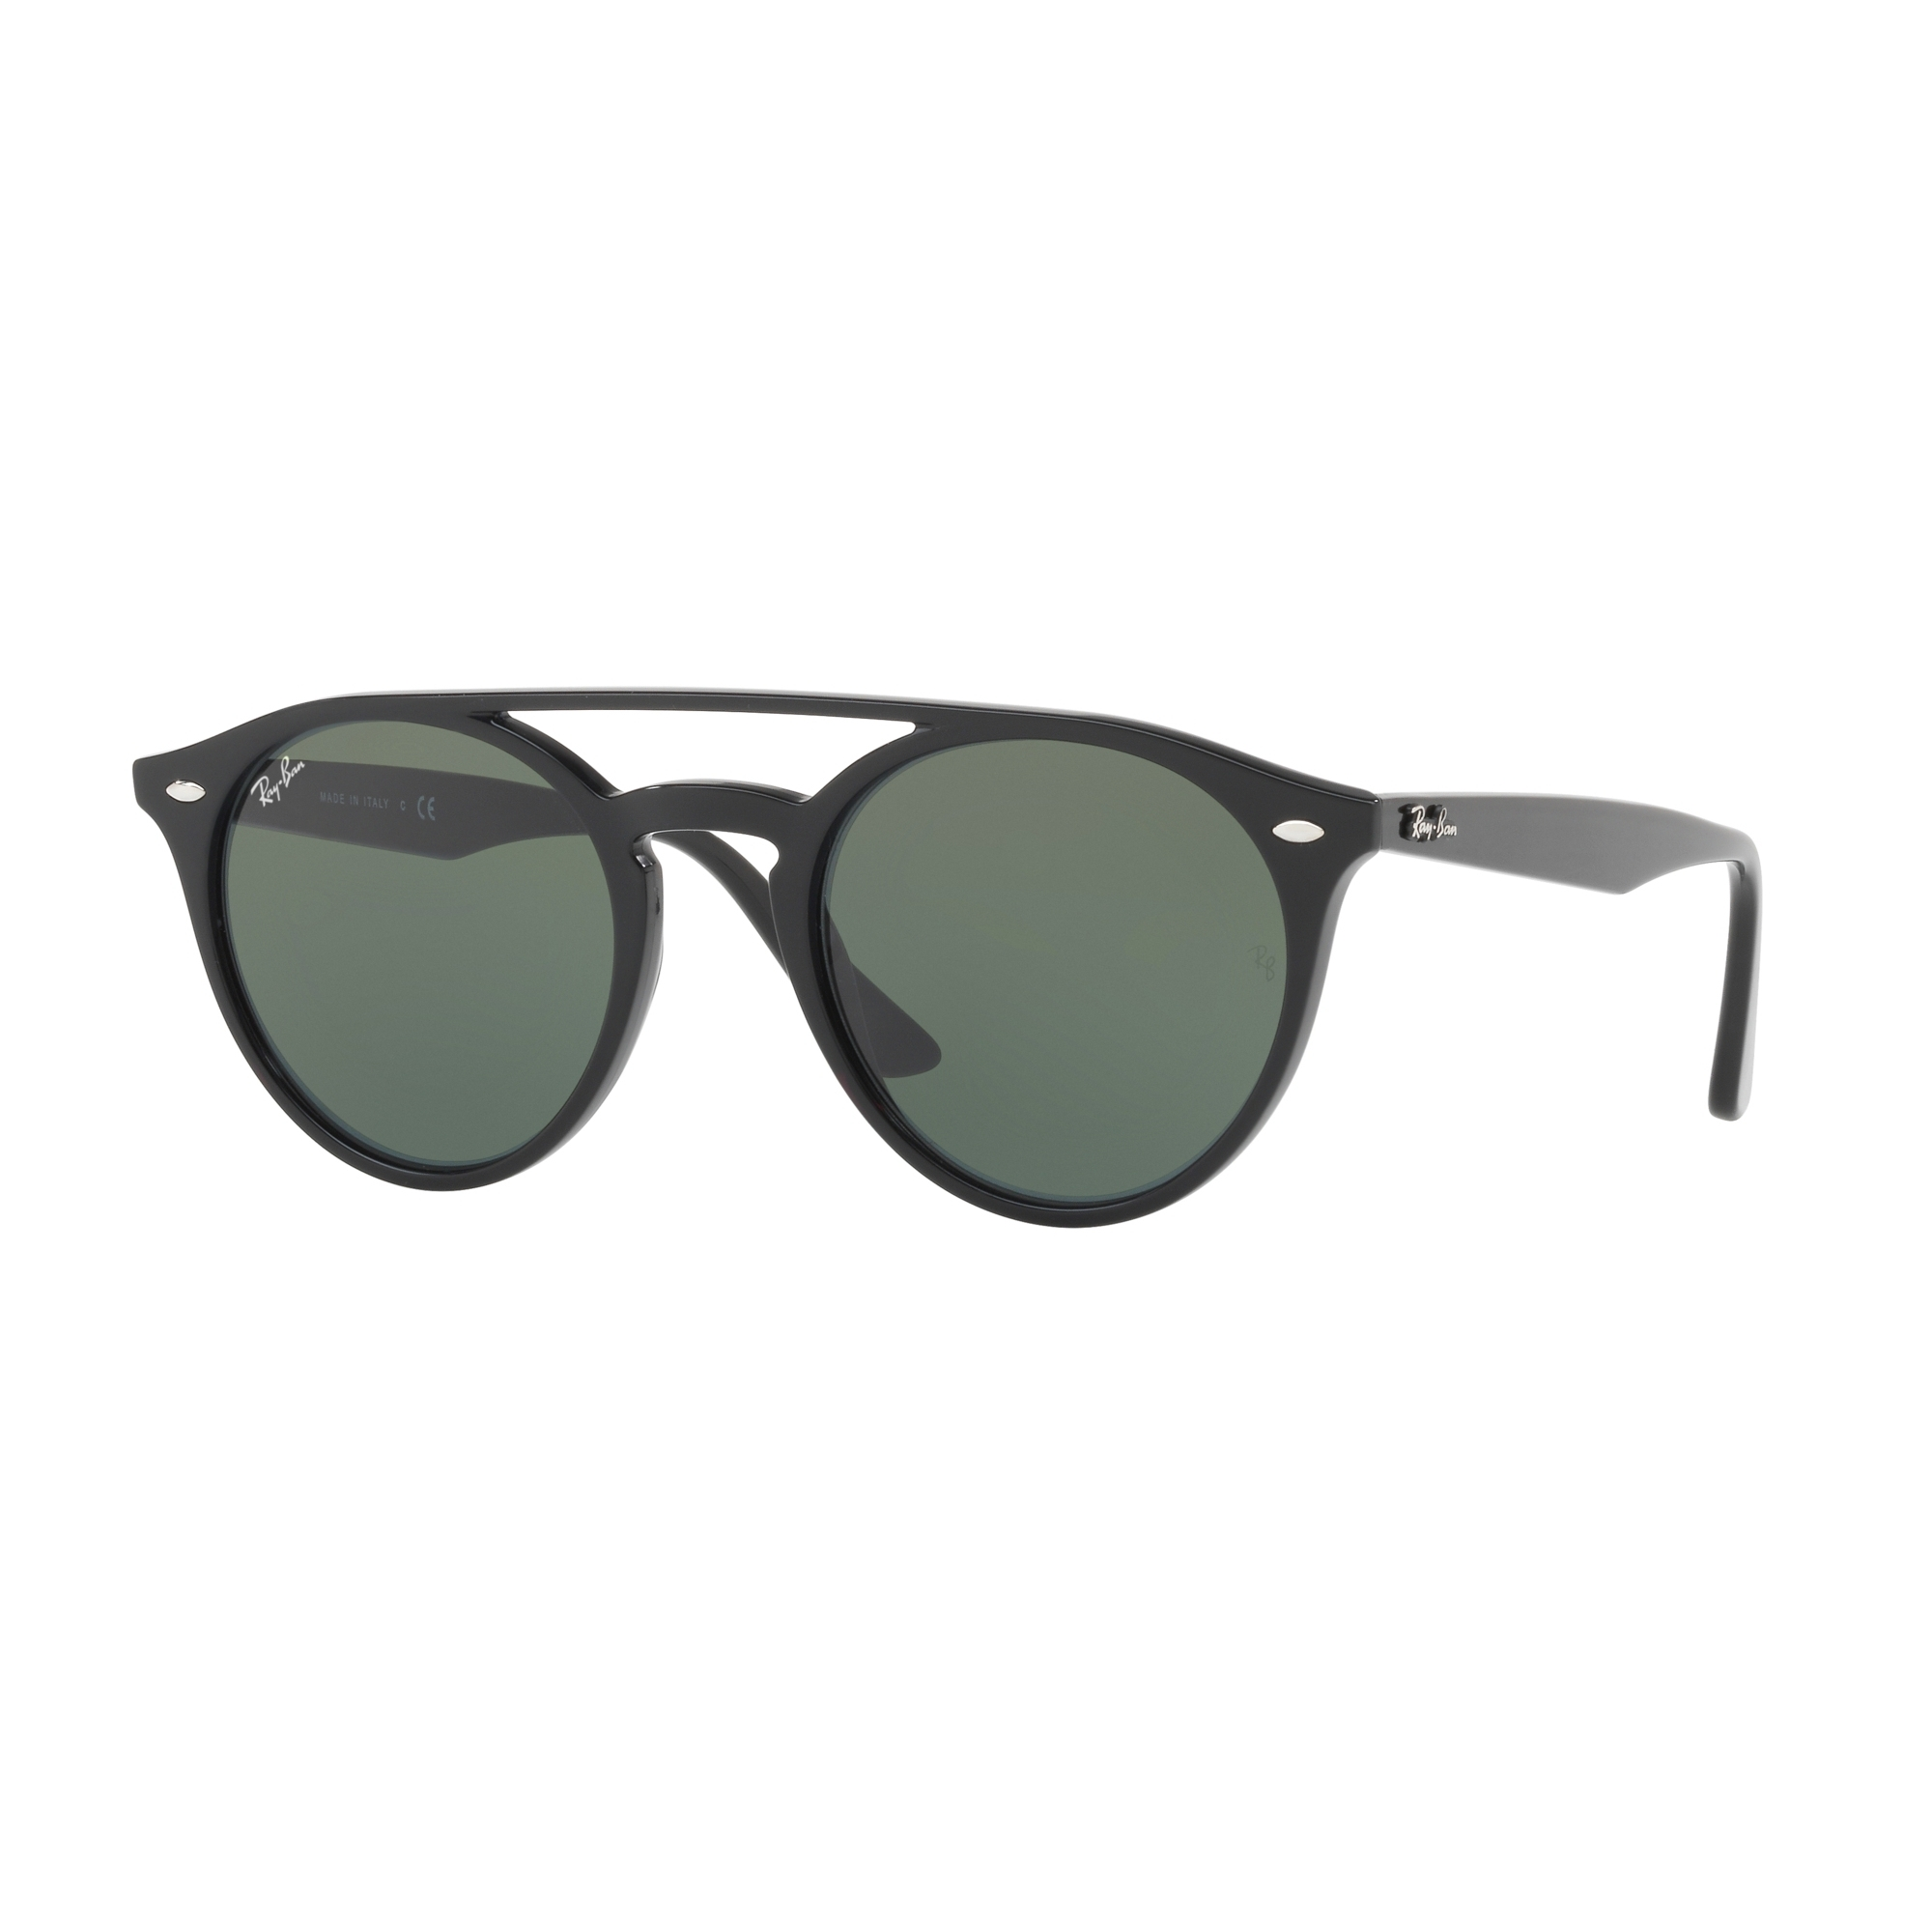 c35a462ab15236 Ray-Ban Black Green Classic RB4279 Sunglasses RB4279-601 71-51 - WATCH  SHOP.™